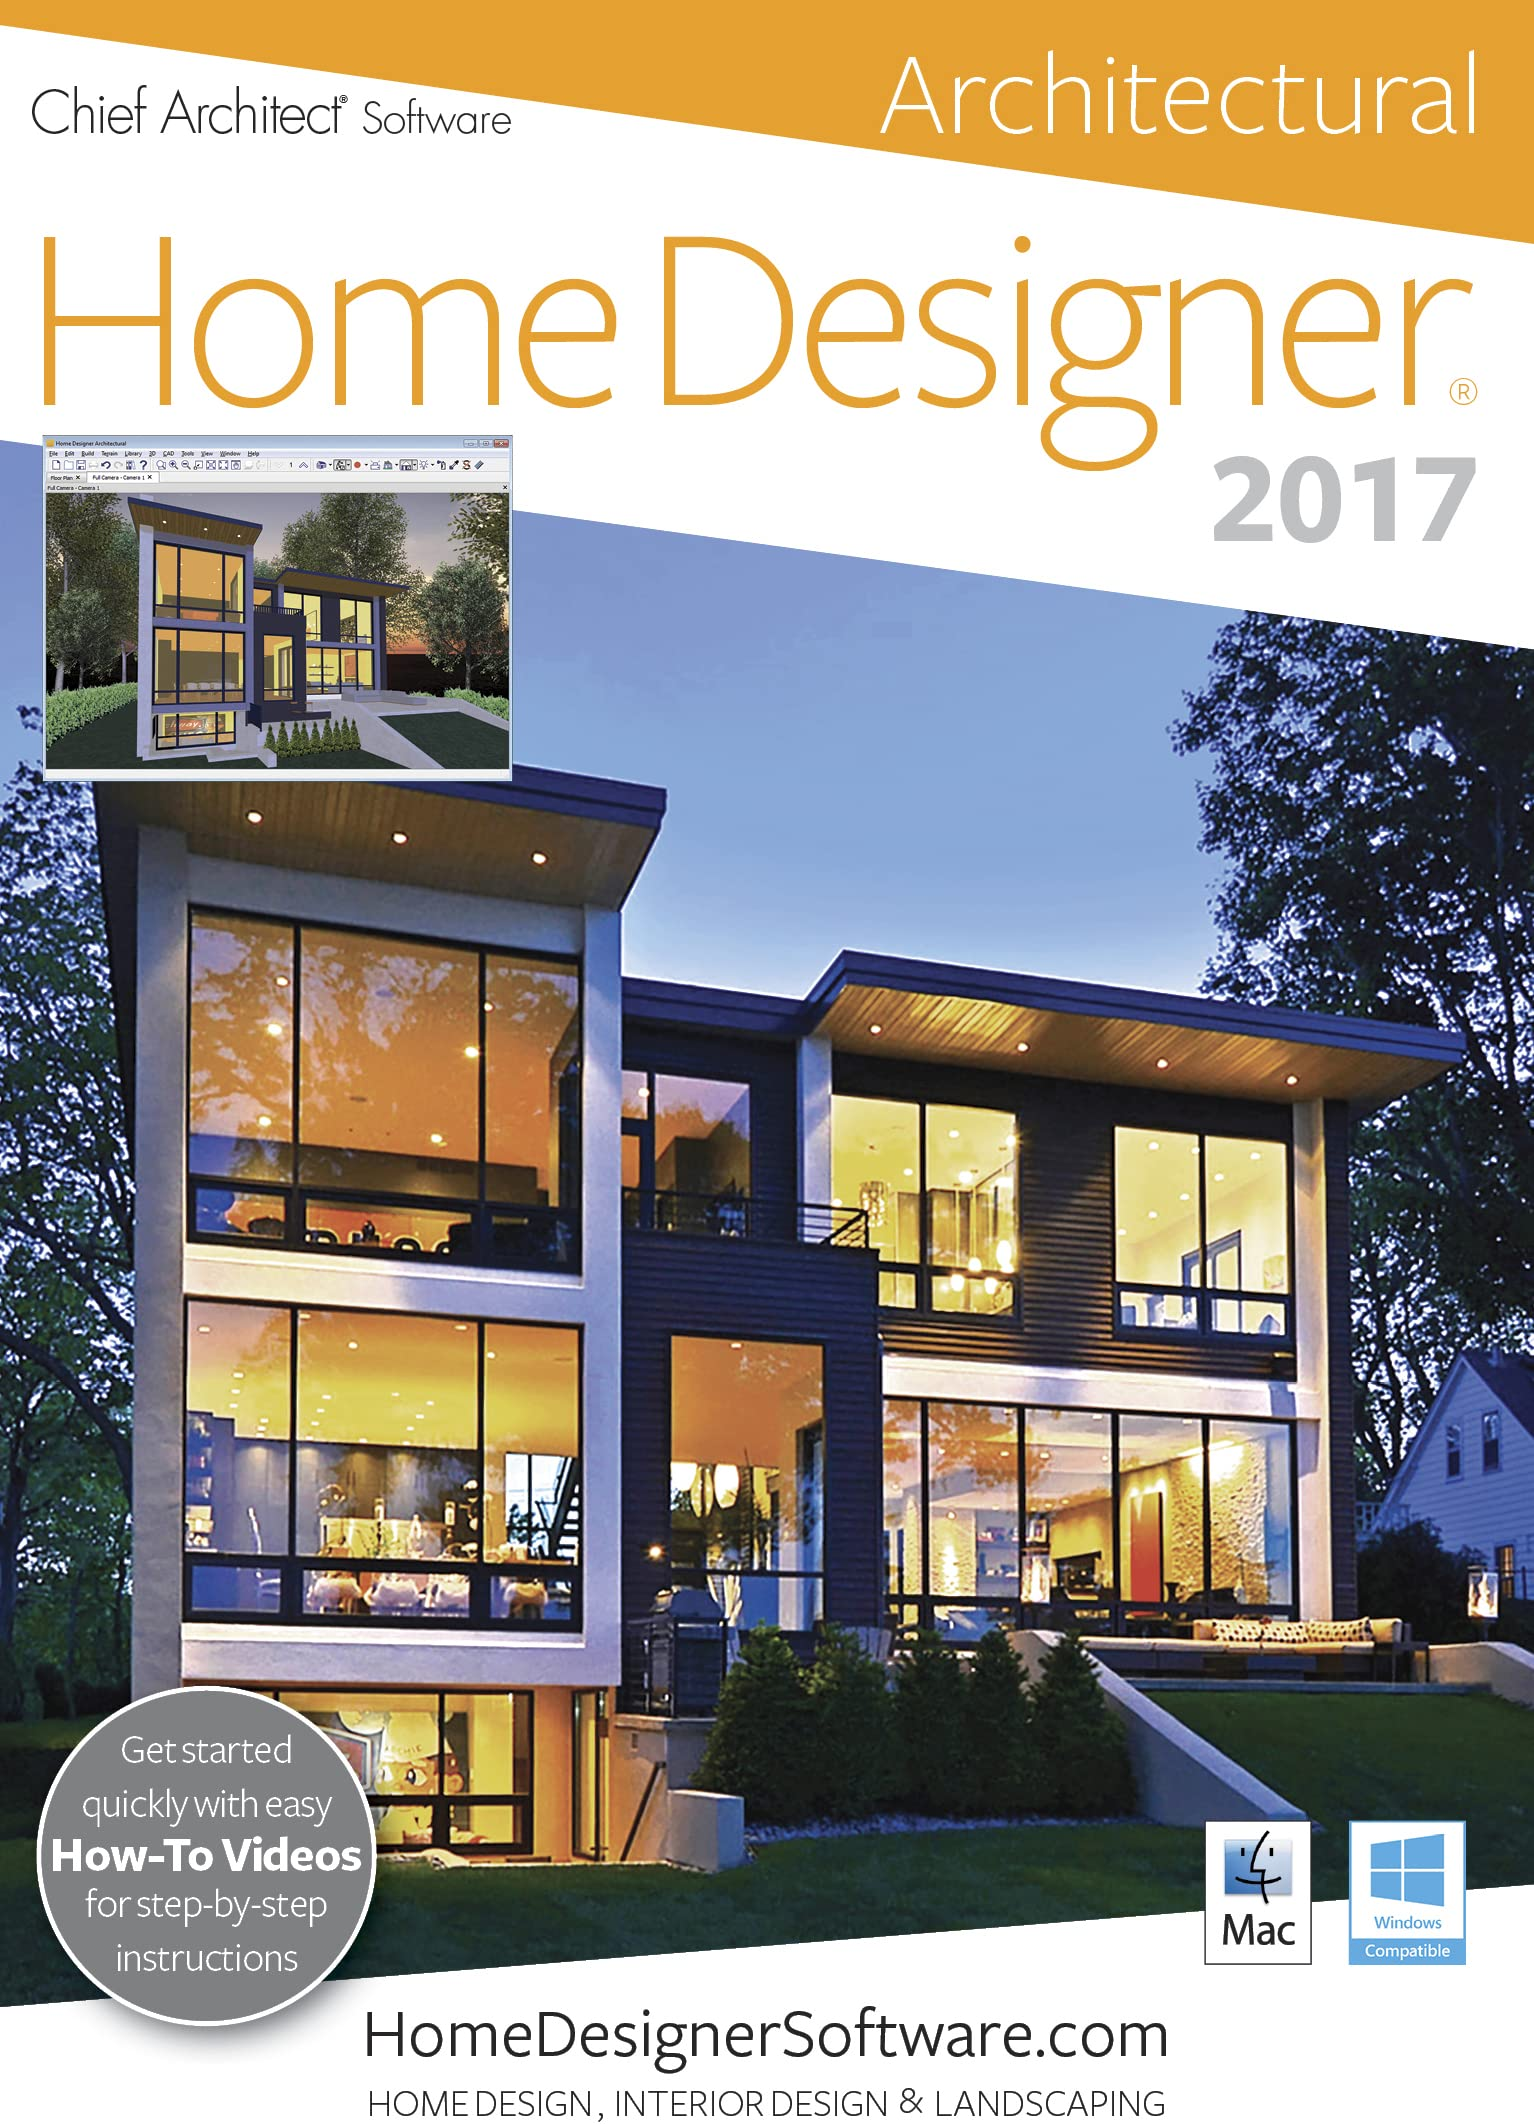 Home Designer Architectural 2017 Download product image